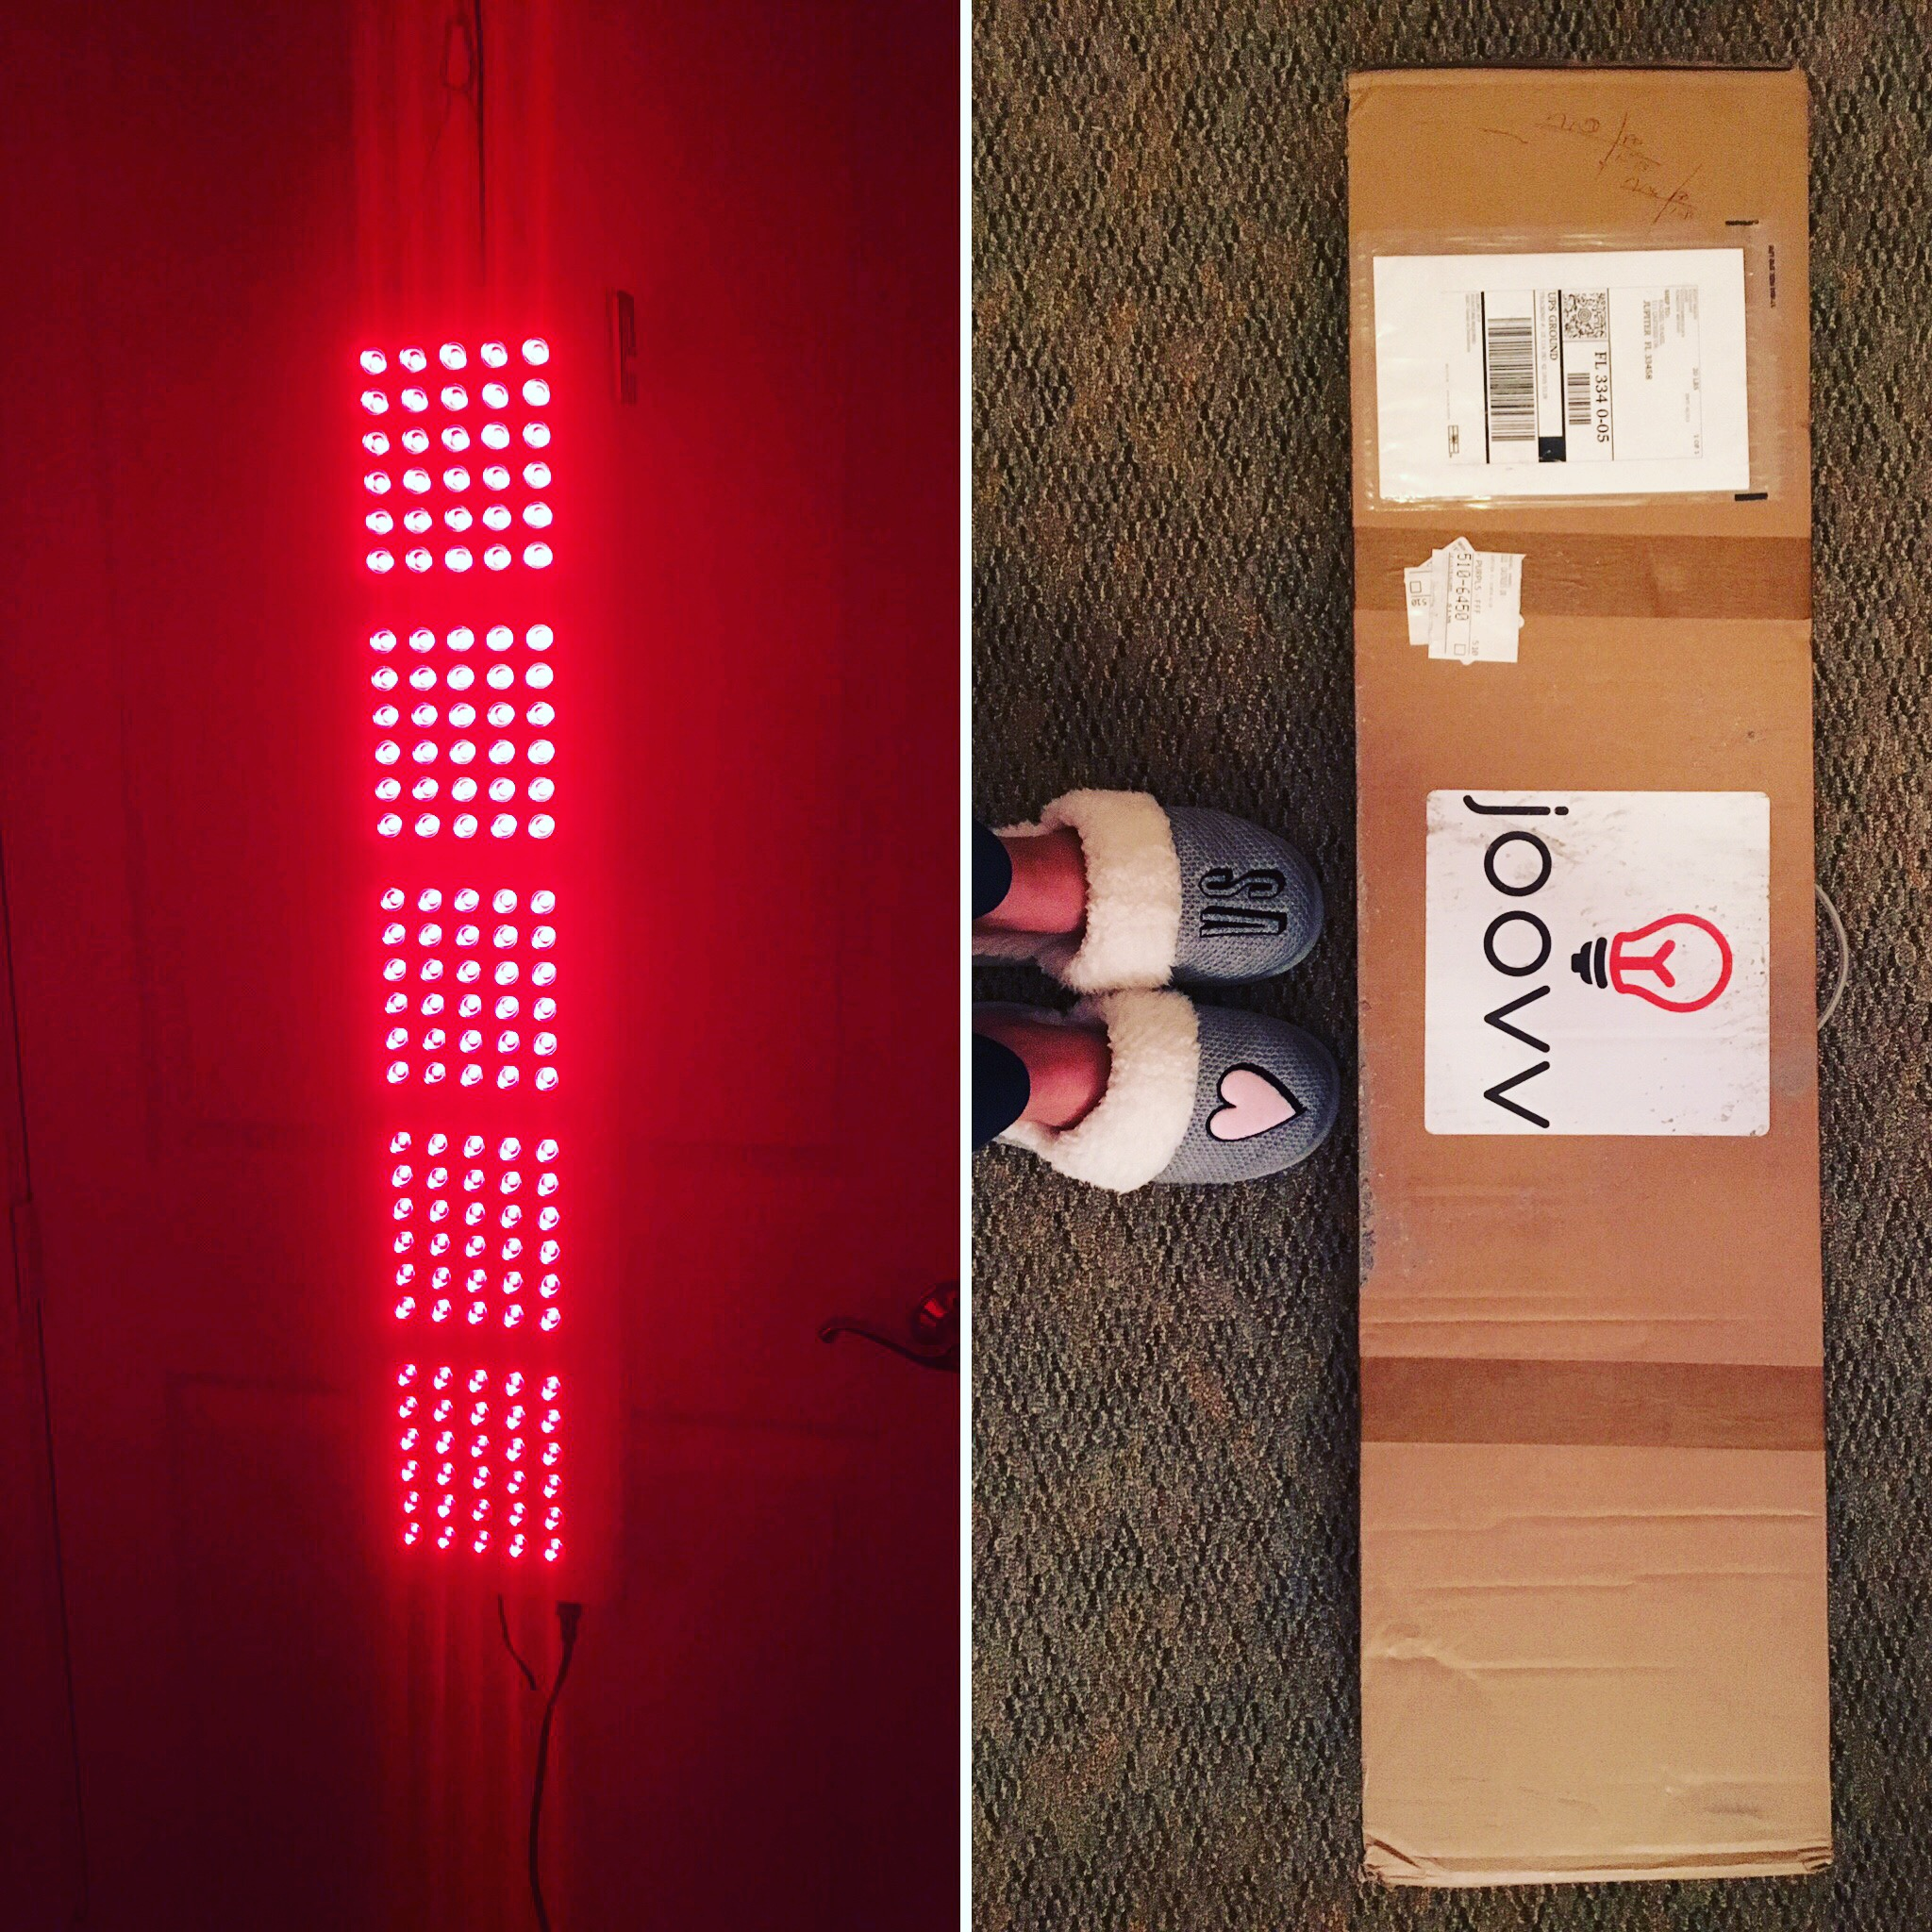 Joovv Red Light Therapy Is Red Light Therapy A Bright Idea